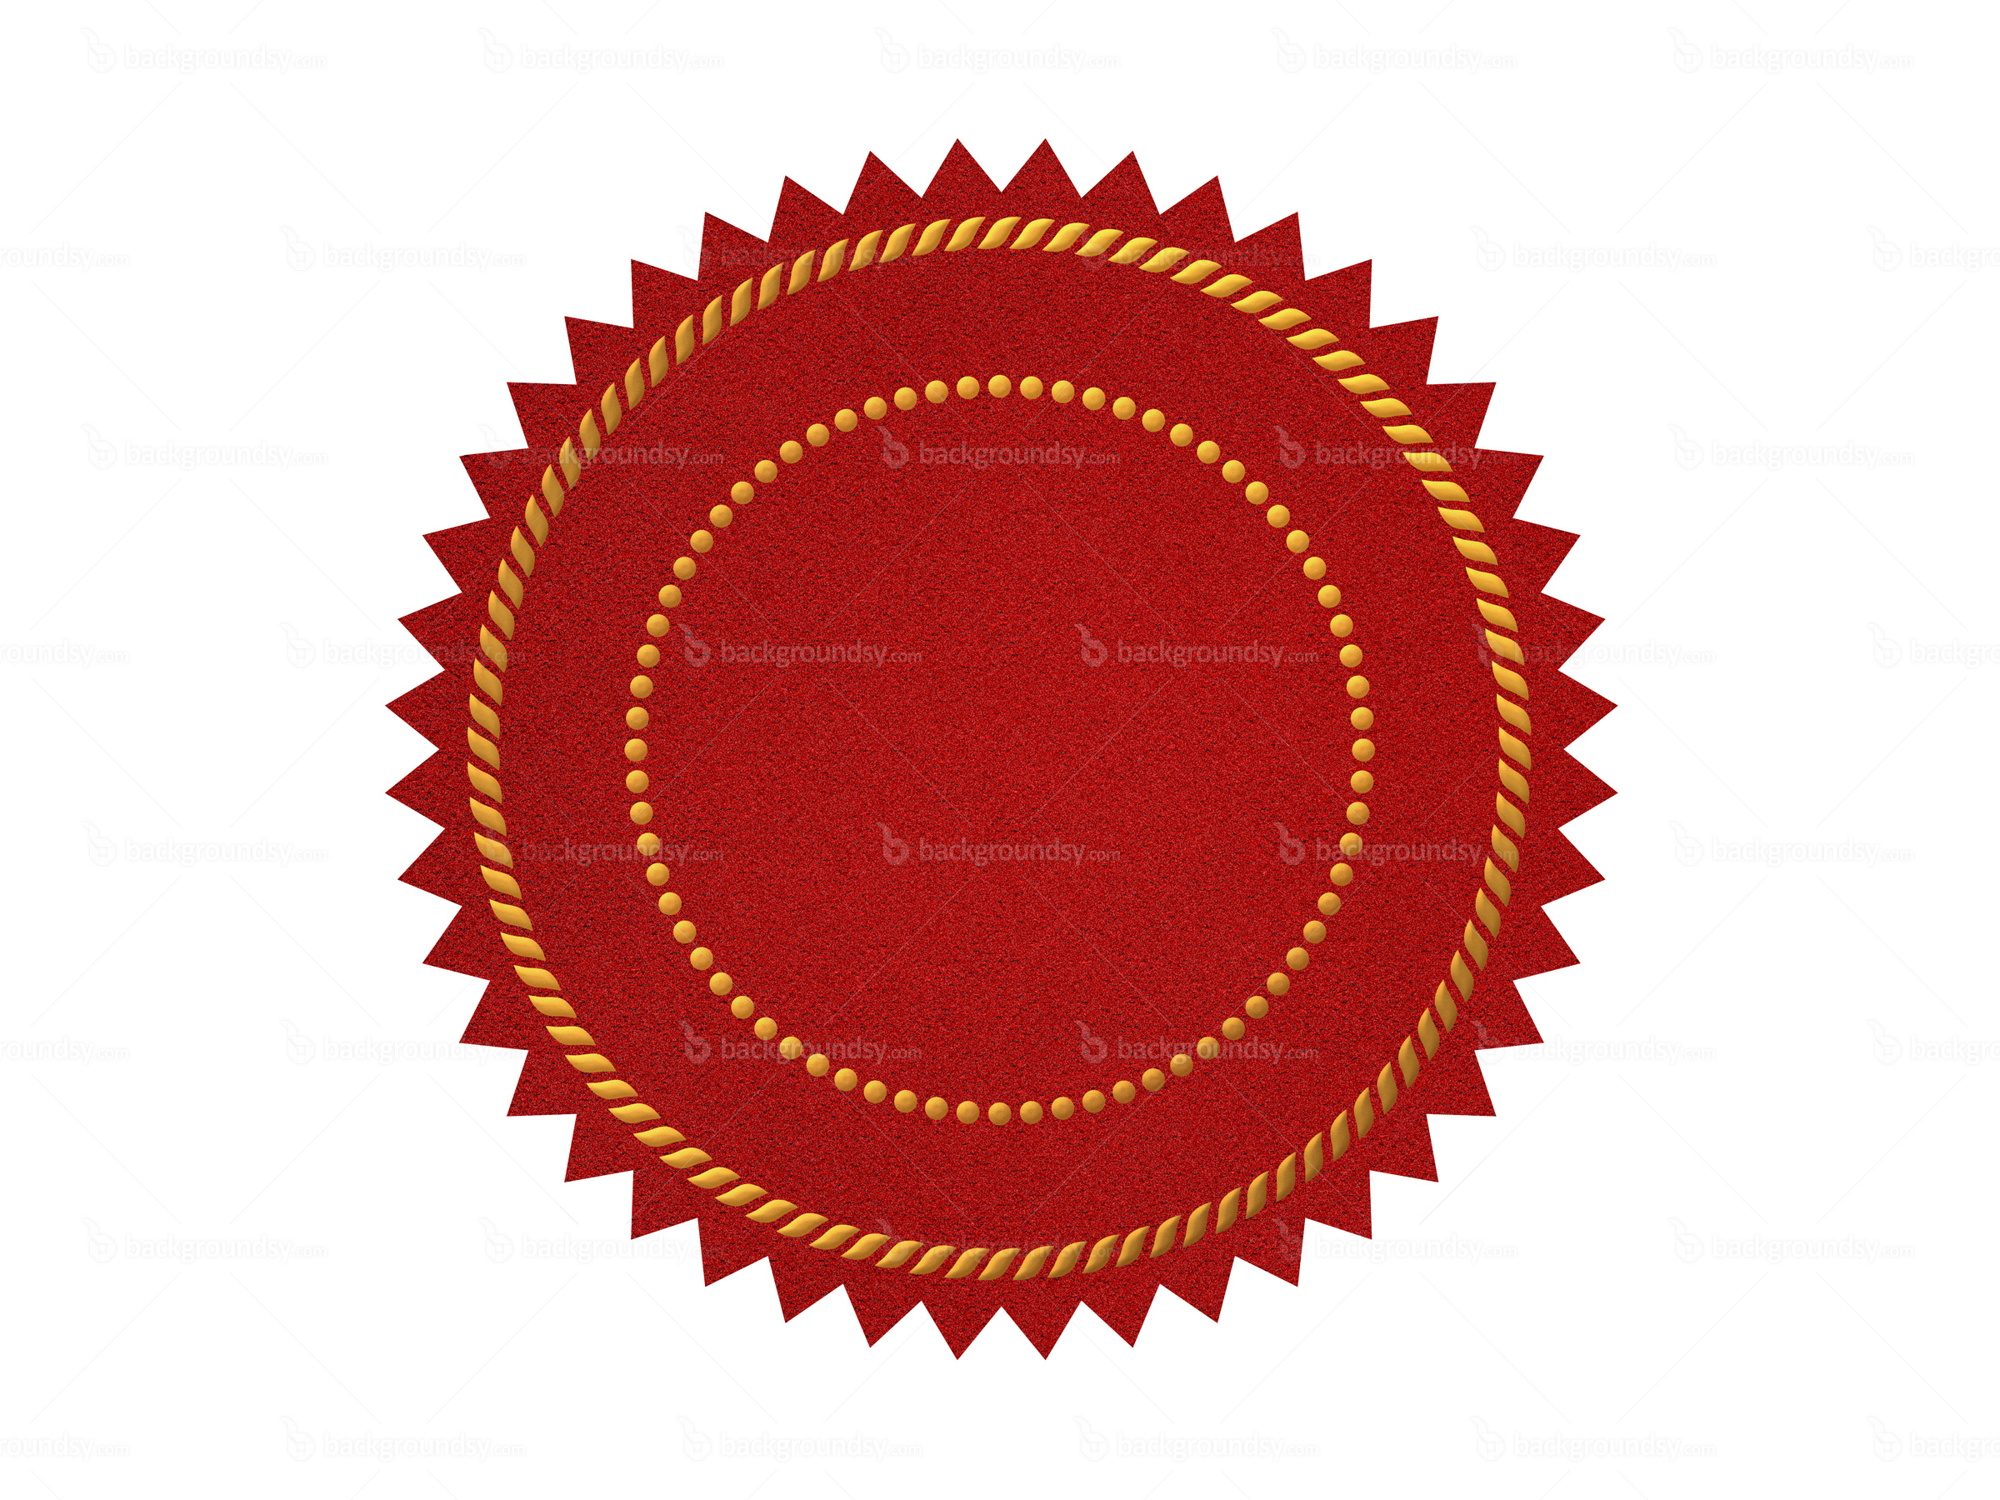 89 Certificate Stamp Png Red Wax Seal Clip Art At Clker Badge